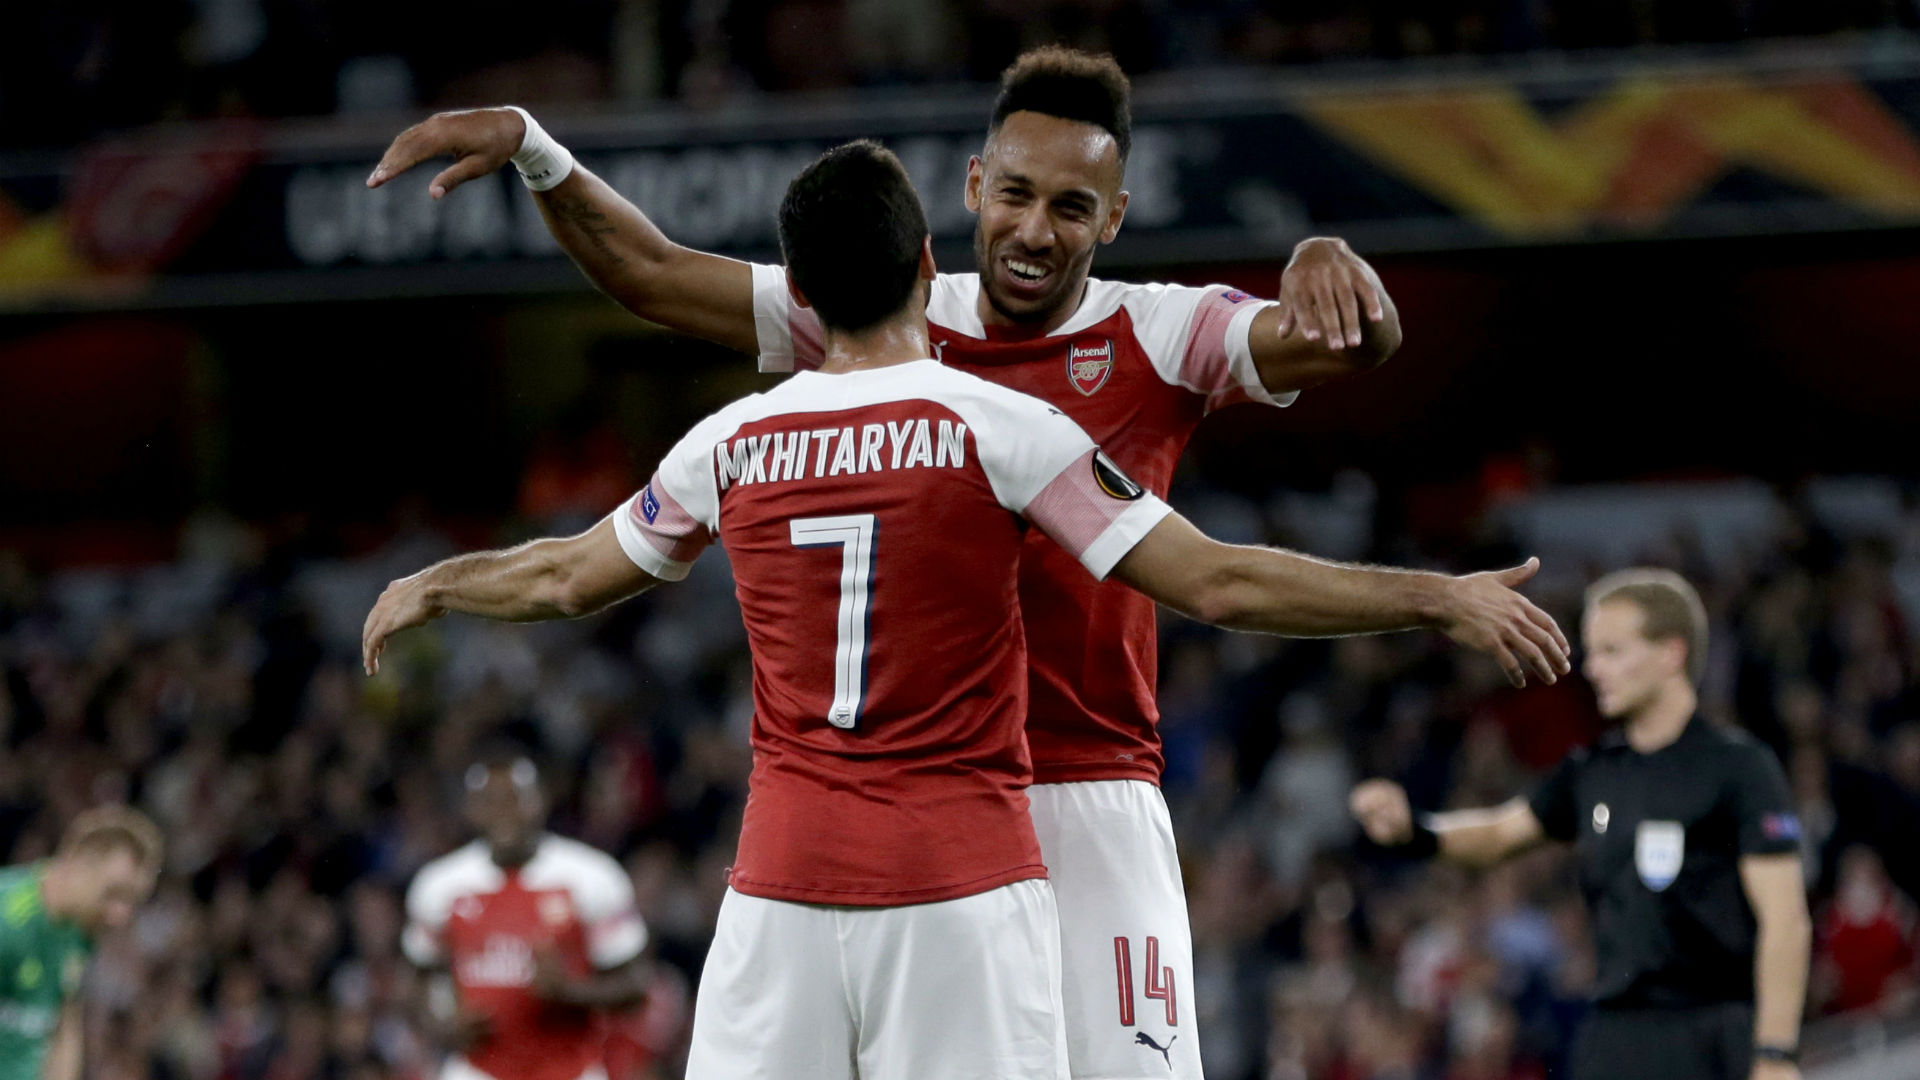 Pierre-Emerick Aubameyang Henrikh Mkhitaryan Arsenal Europa League 2018